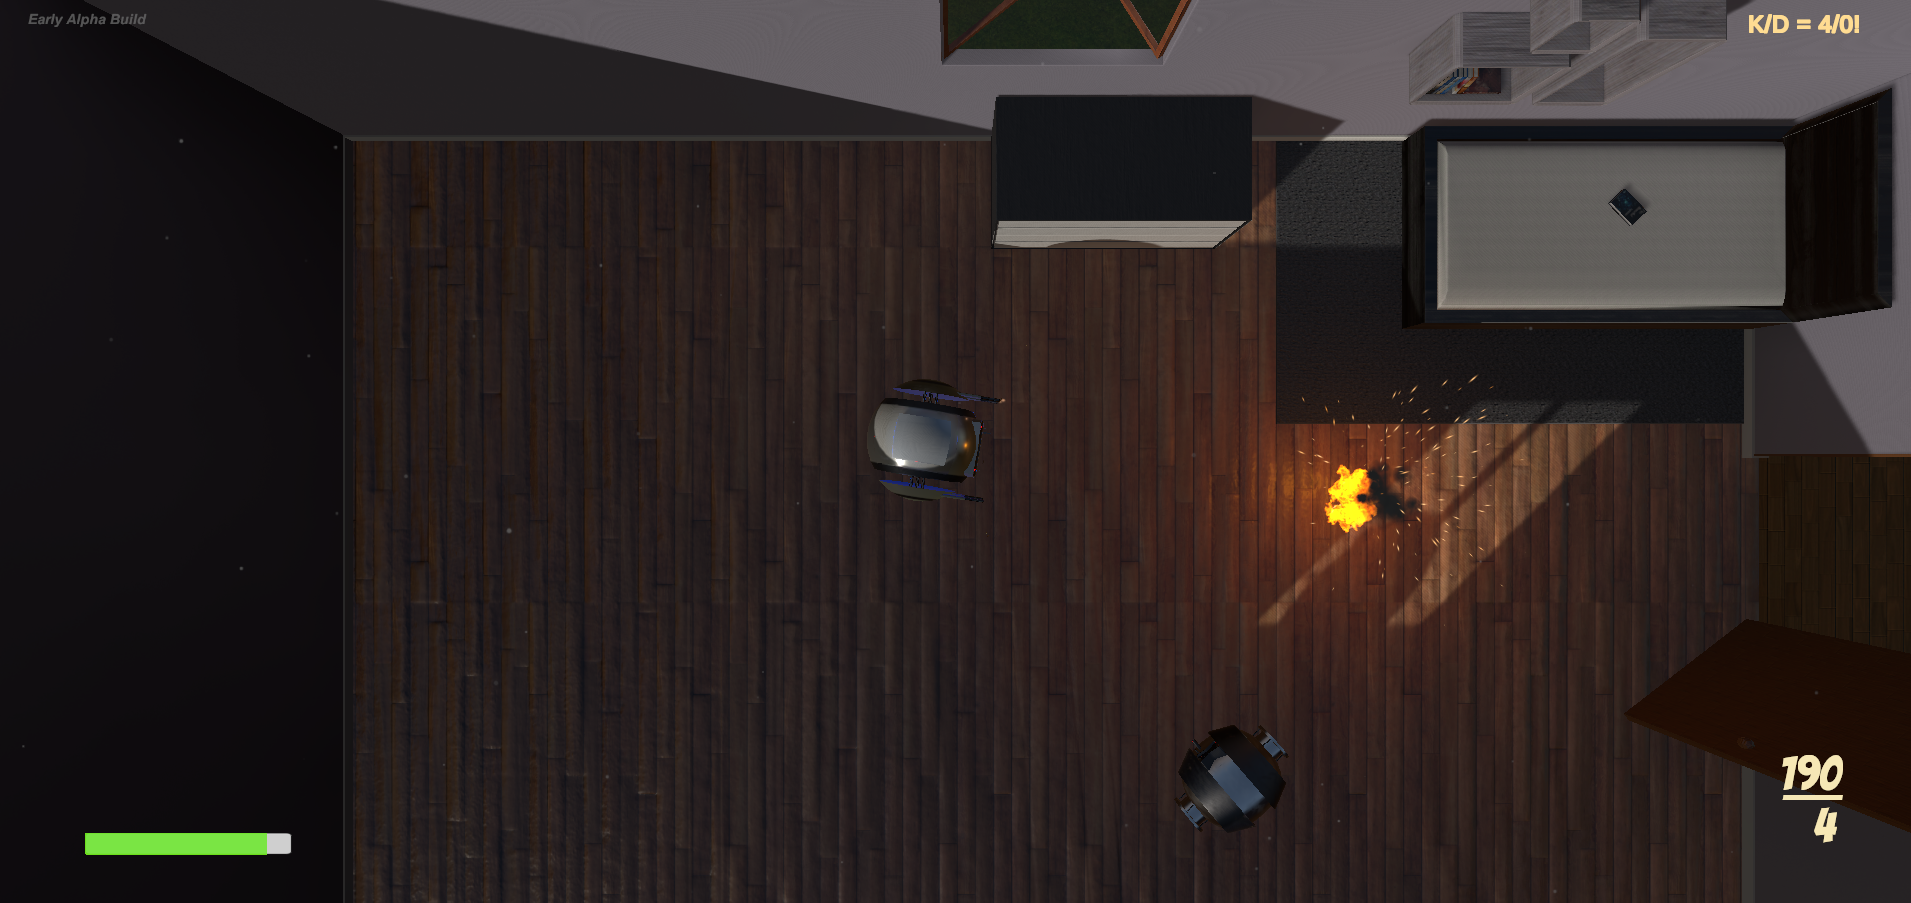 Unfinished Top-Down Shooter